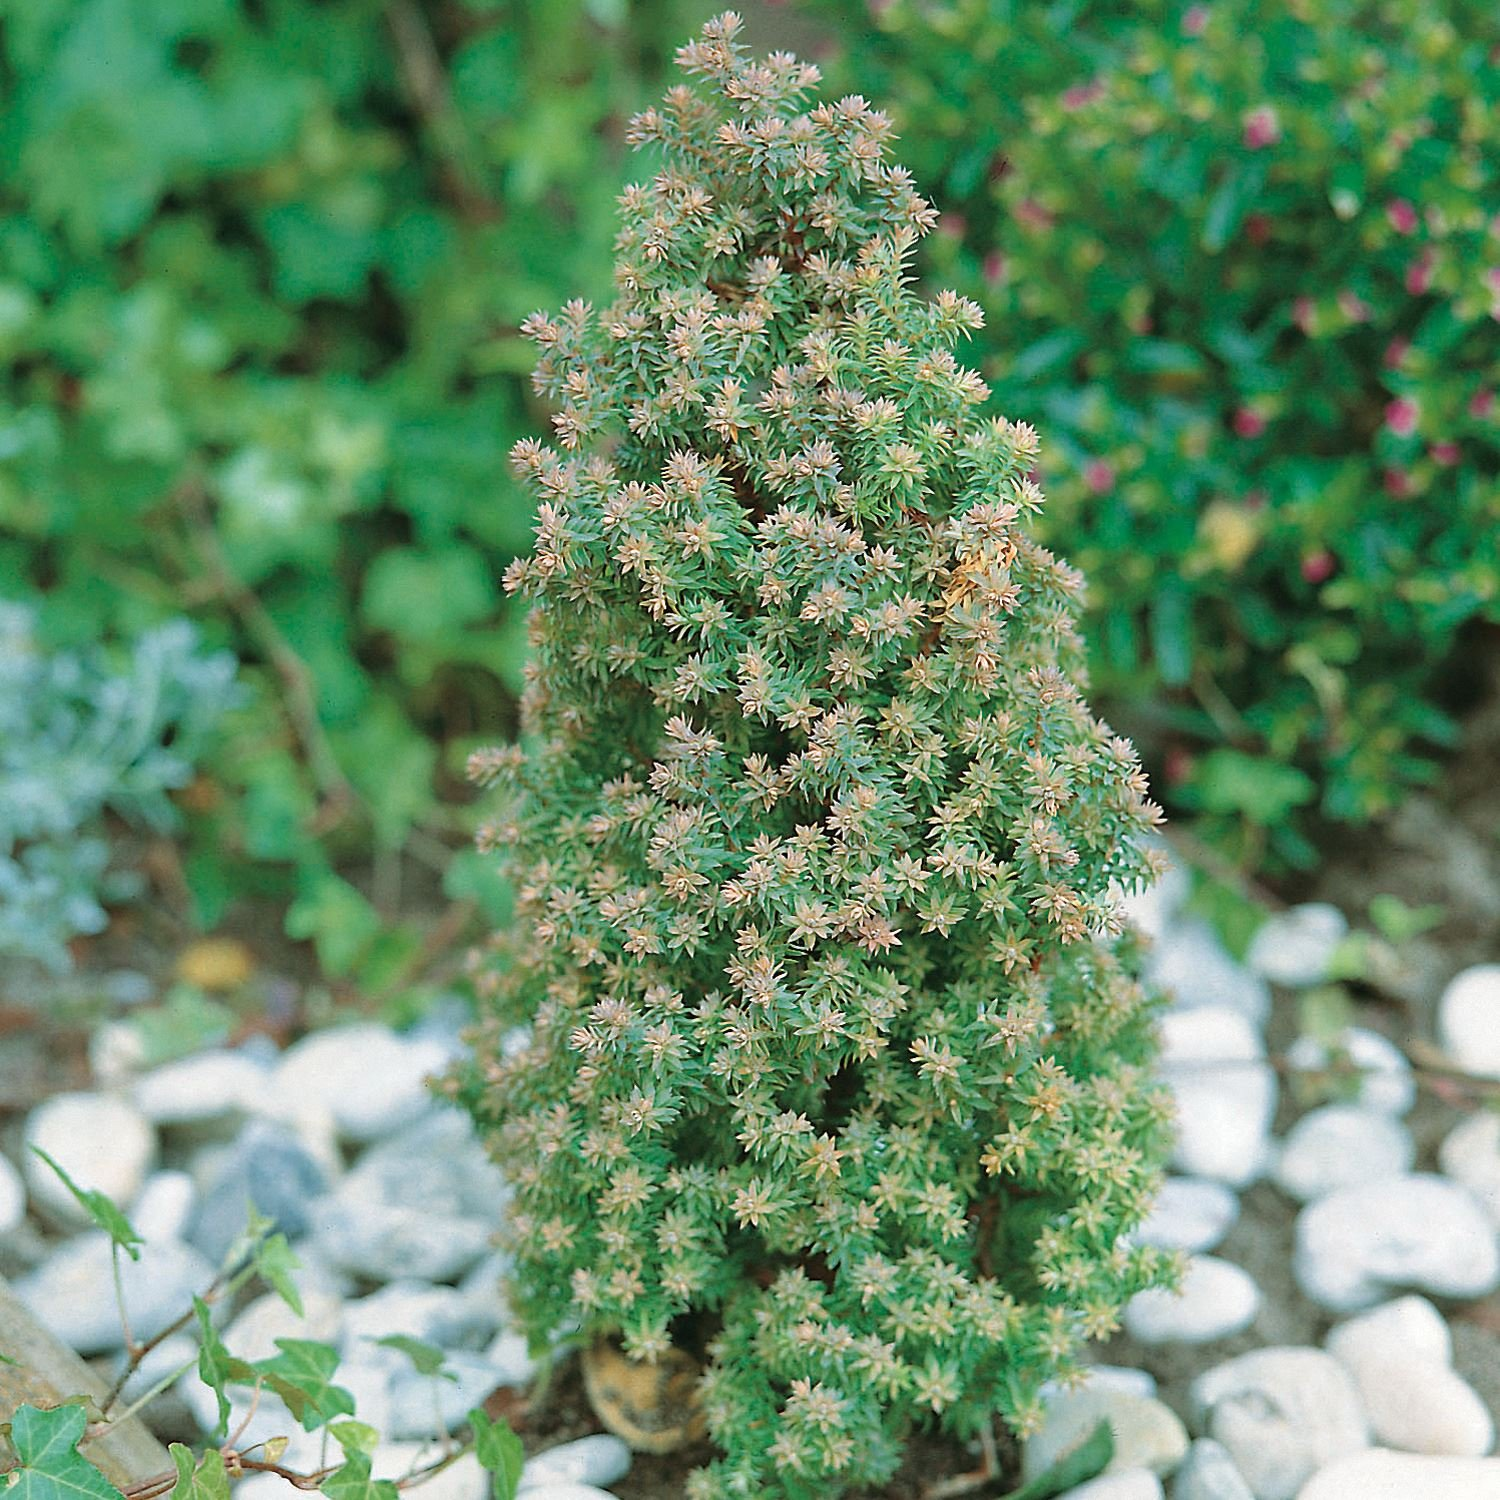 9cm Pot Dwarf Conifer Chamaecyparis Thyoides Rubicon( Red Star) Compact for Rockery, Small Border B&R Direct (UK) Ltd